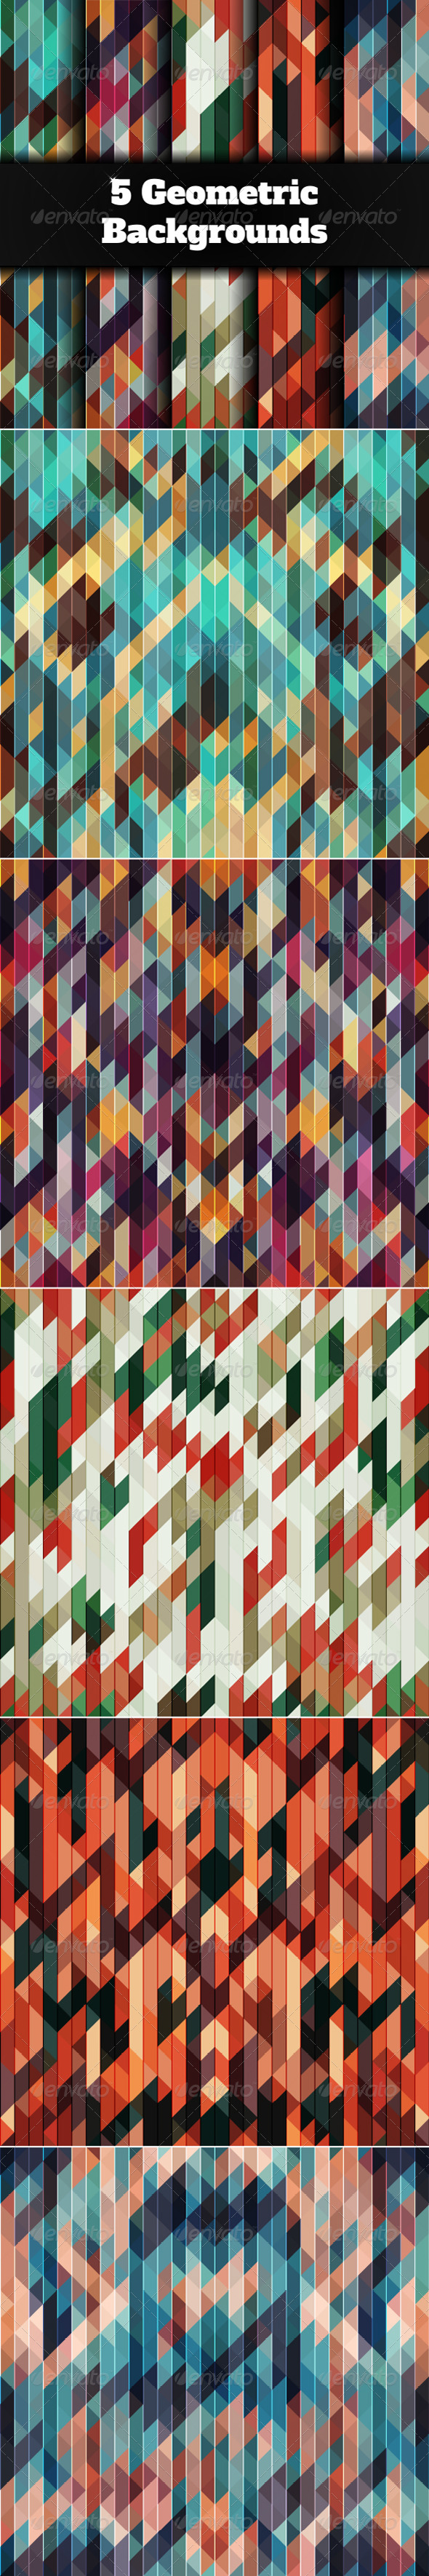 5 Abstract Geometric Background - Backgrounds Decorative